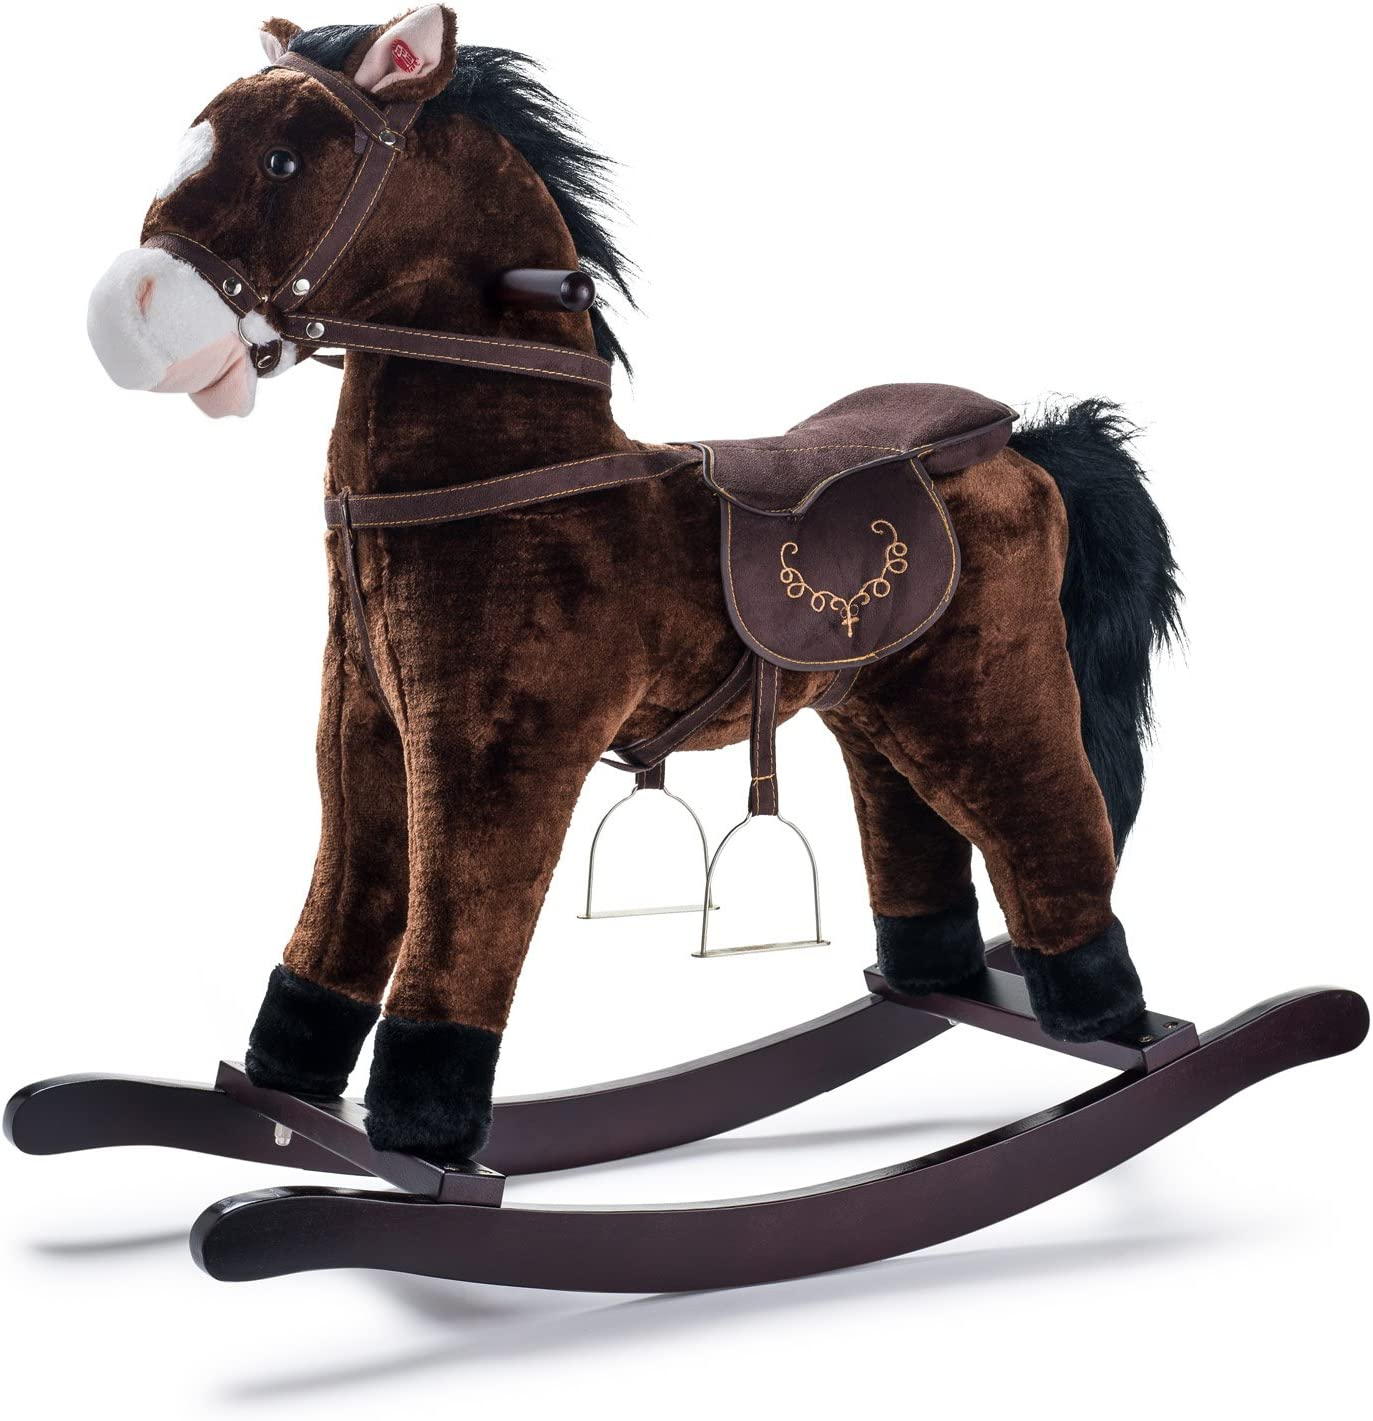 Top 10 Best Rocking Horse Toy (2020 Reviews & Guide) 6